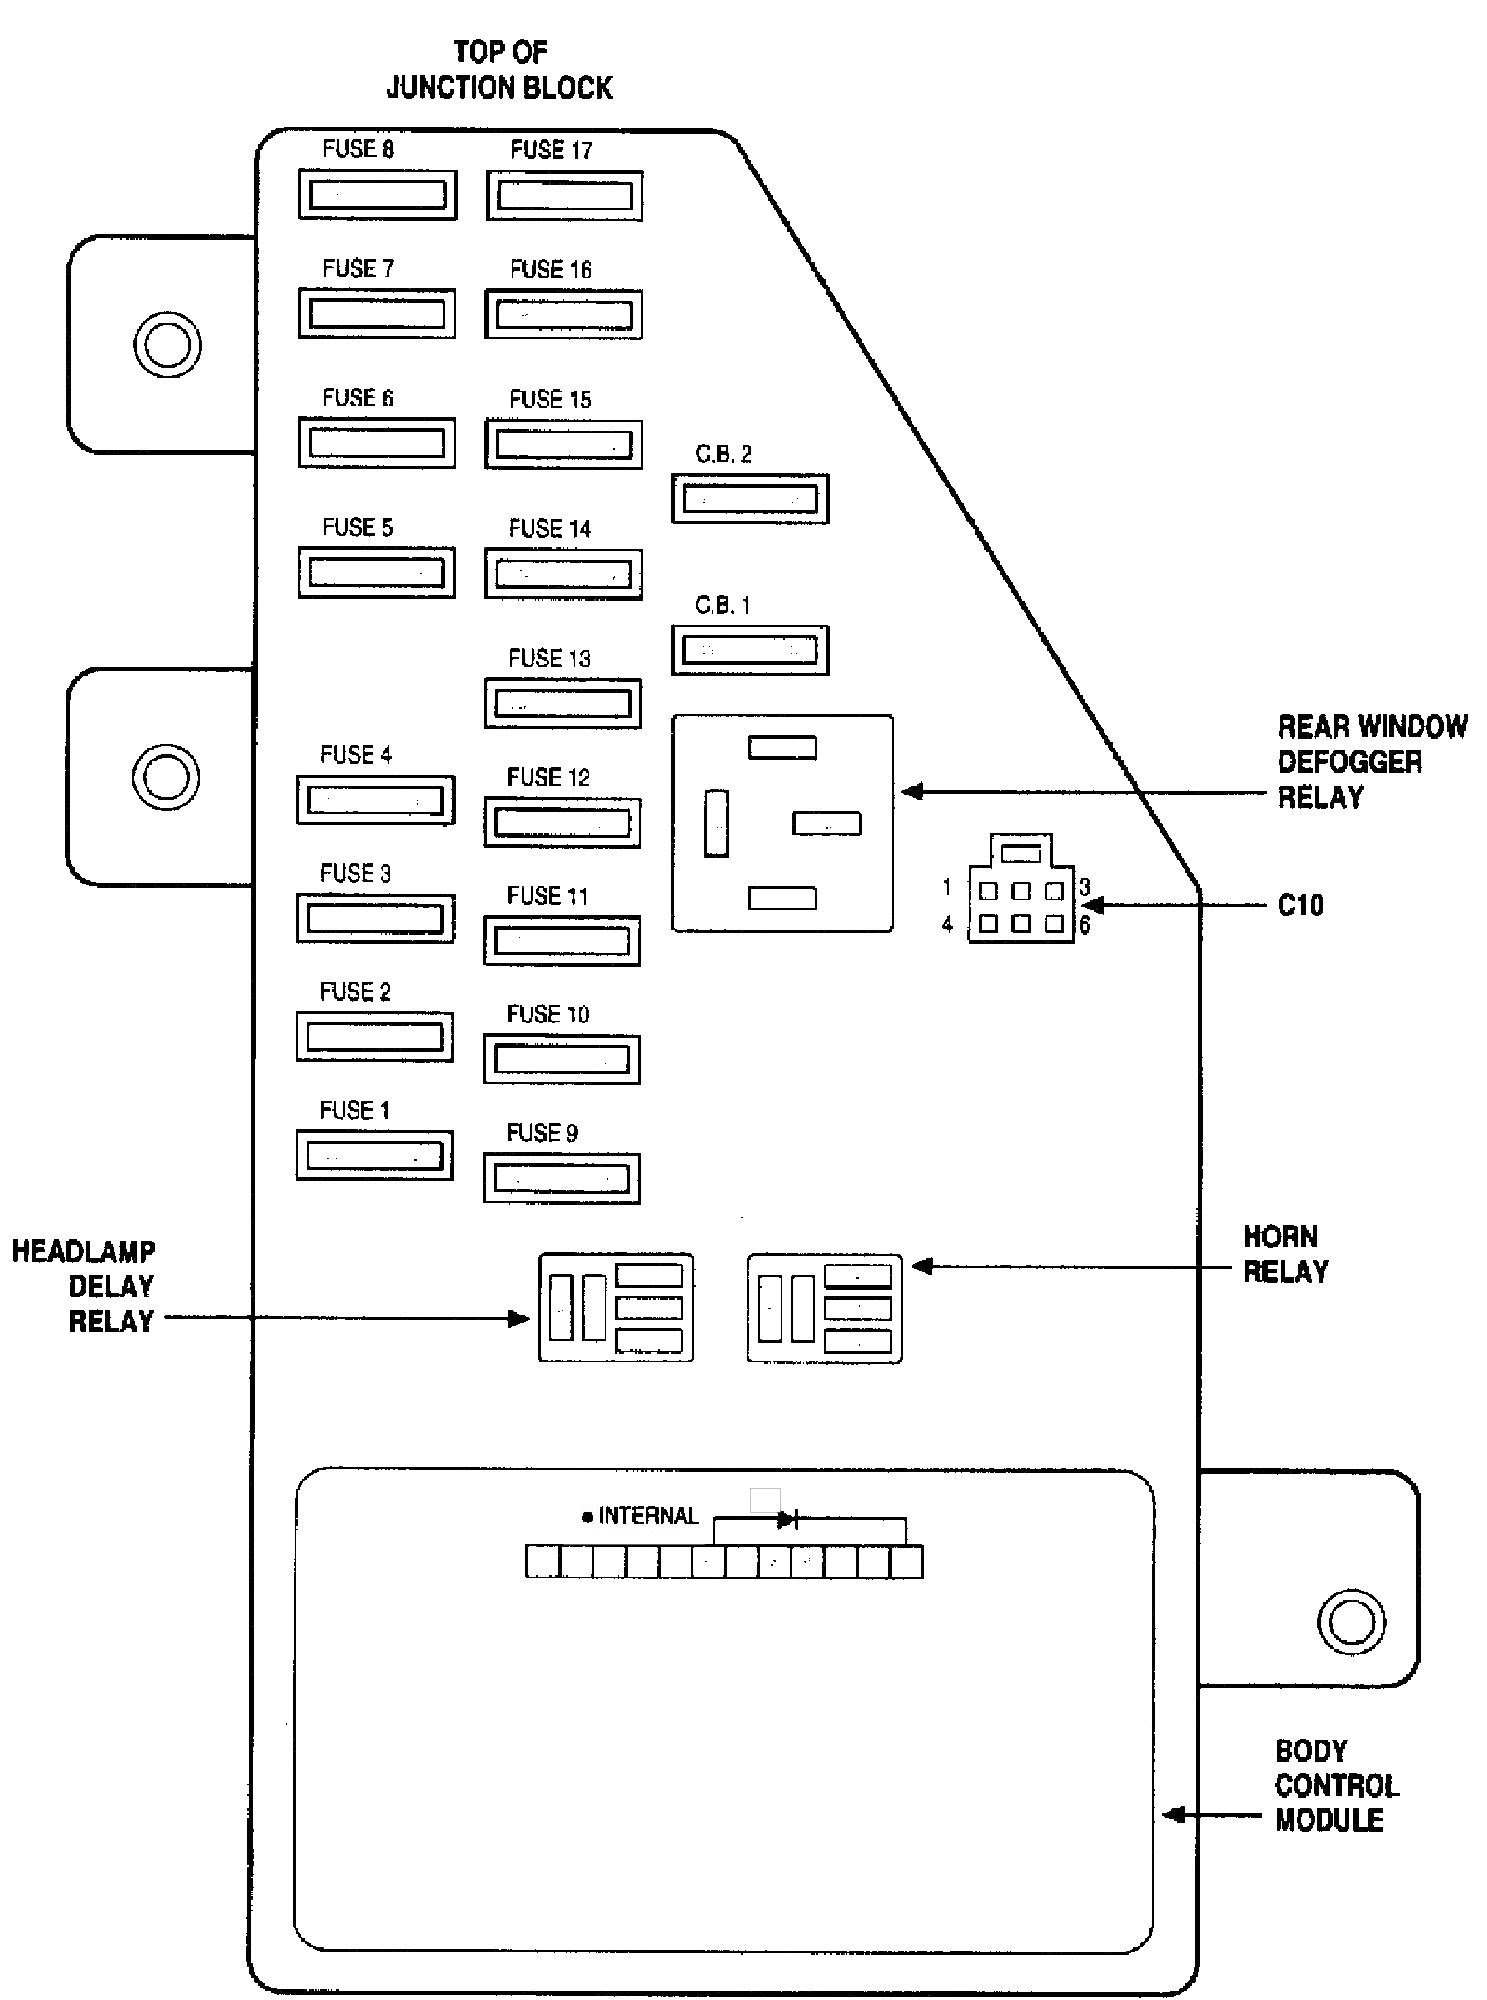 2000 Plymouth Neon Fuse Box Diagram.html